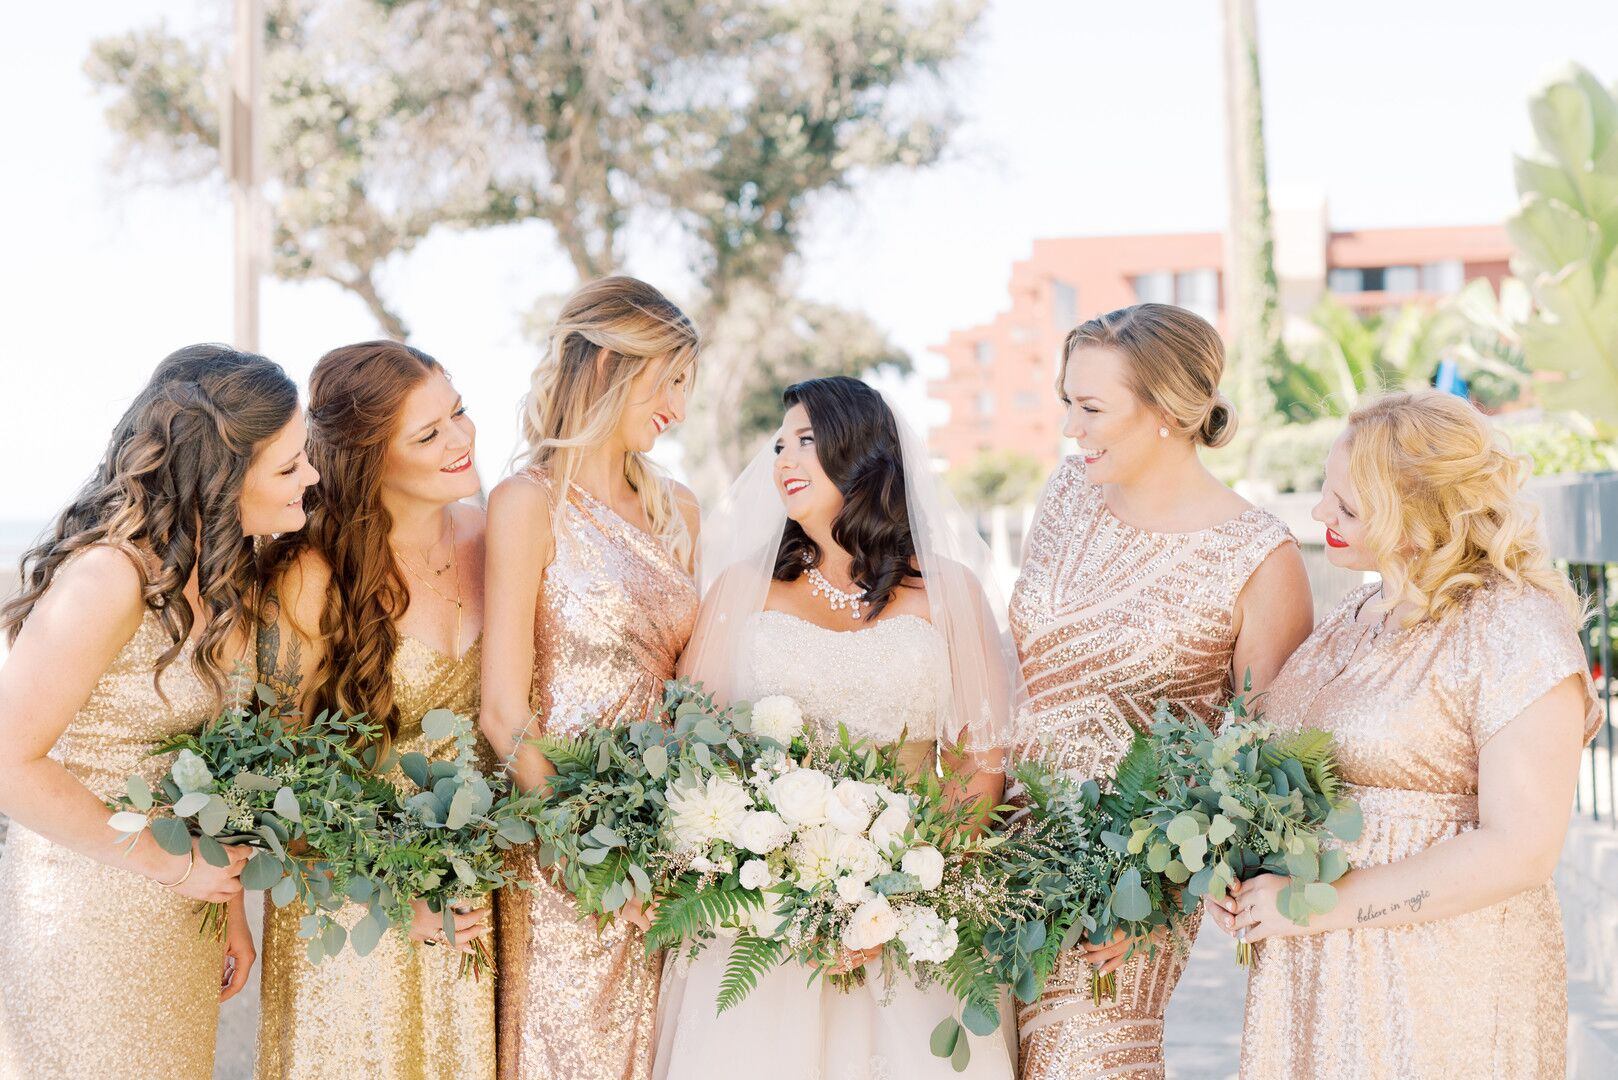 wwww.santabarbawedding.com | Planner: Vintage Heart Events | Ceremony Venue: Serra Cross Park | Photographer: Haley Richter Photography | Bridal Party